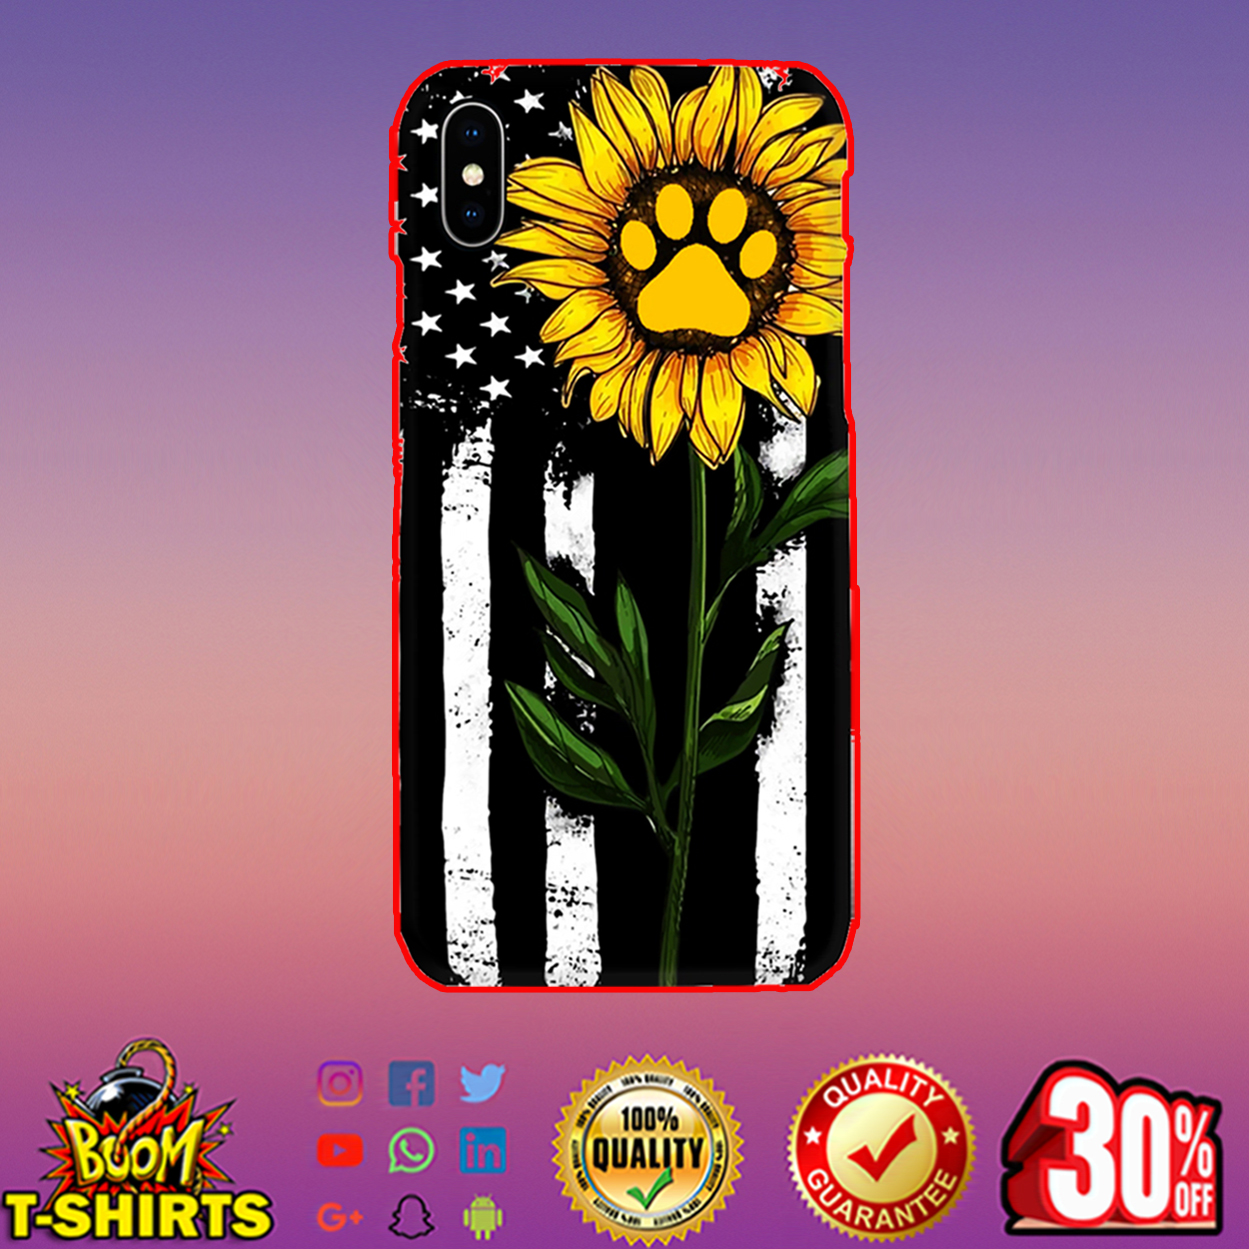 Sunflower American flag paw phone case - iphone X case